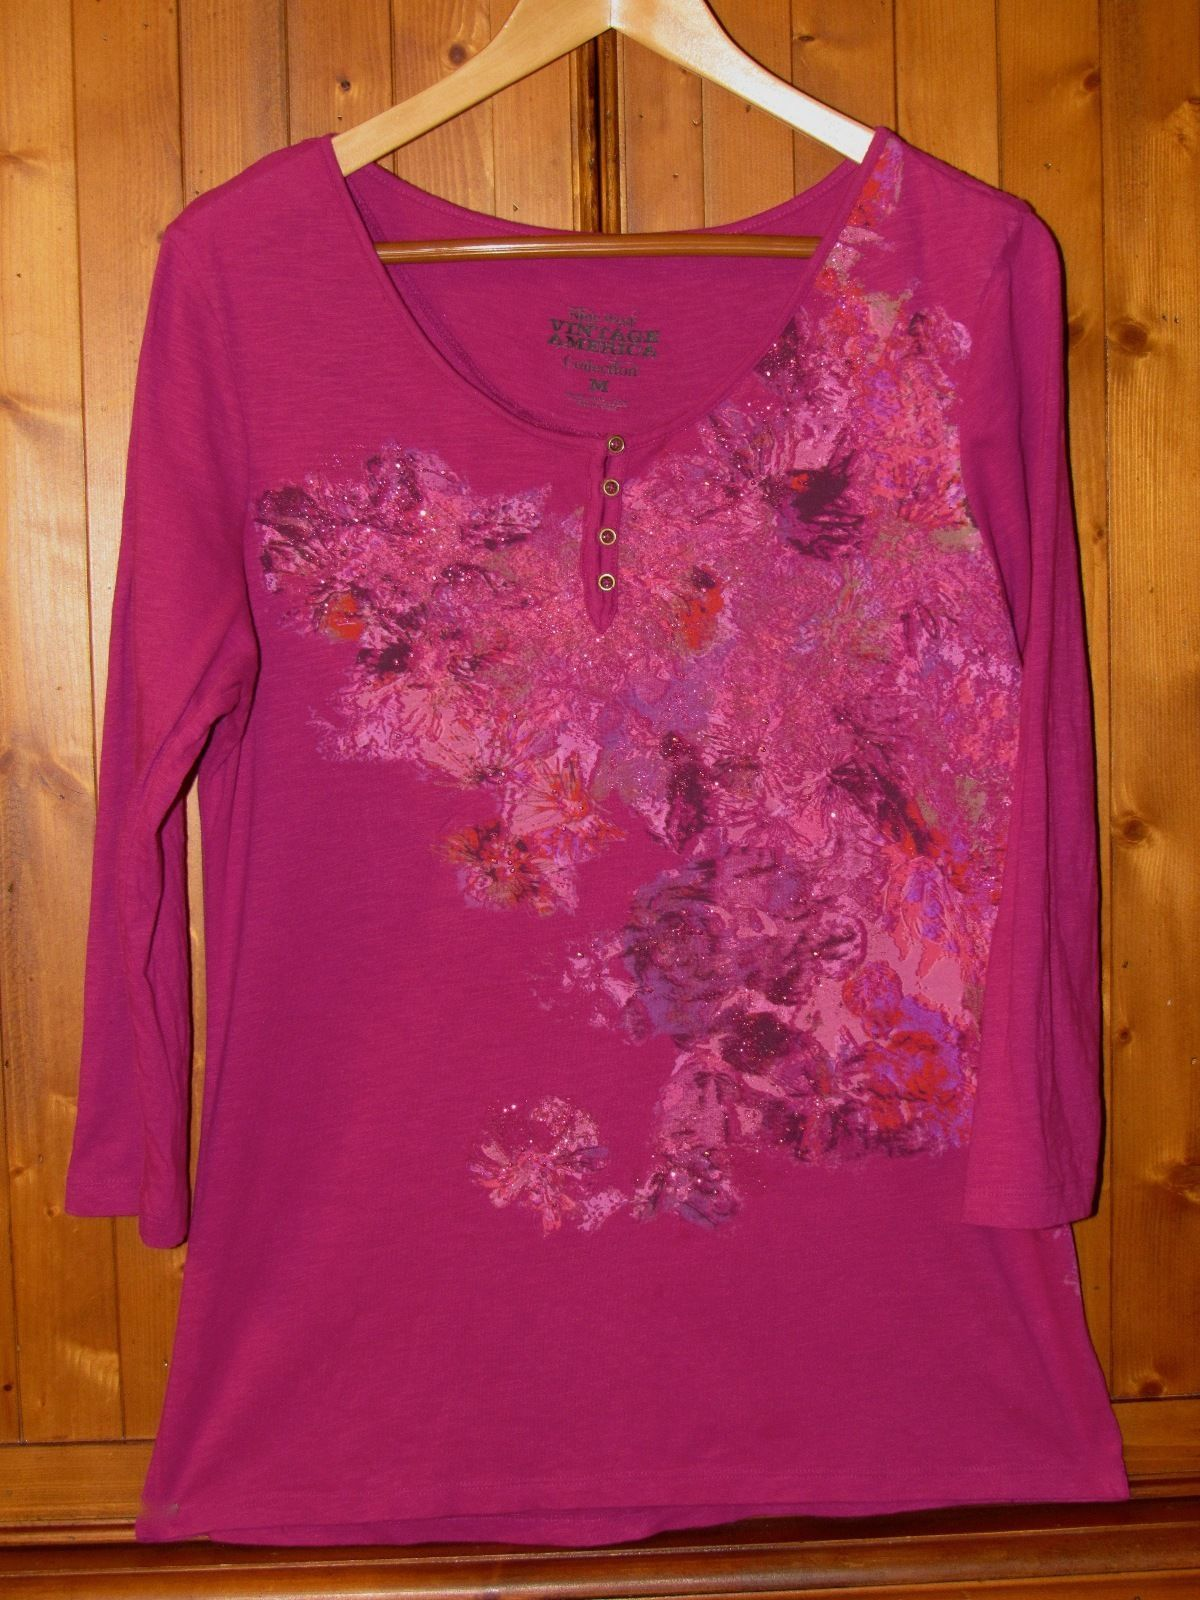 Nine West Vintage America Collection Berry Cotton Embellished Floral Top S: M